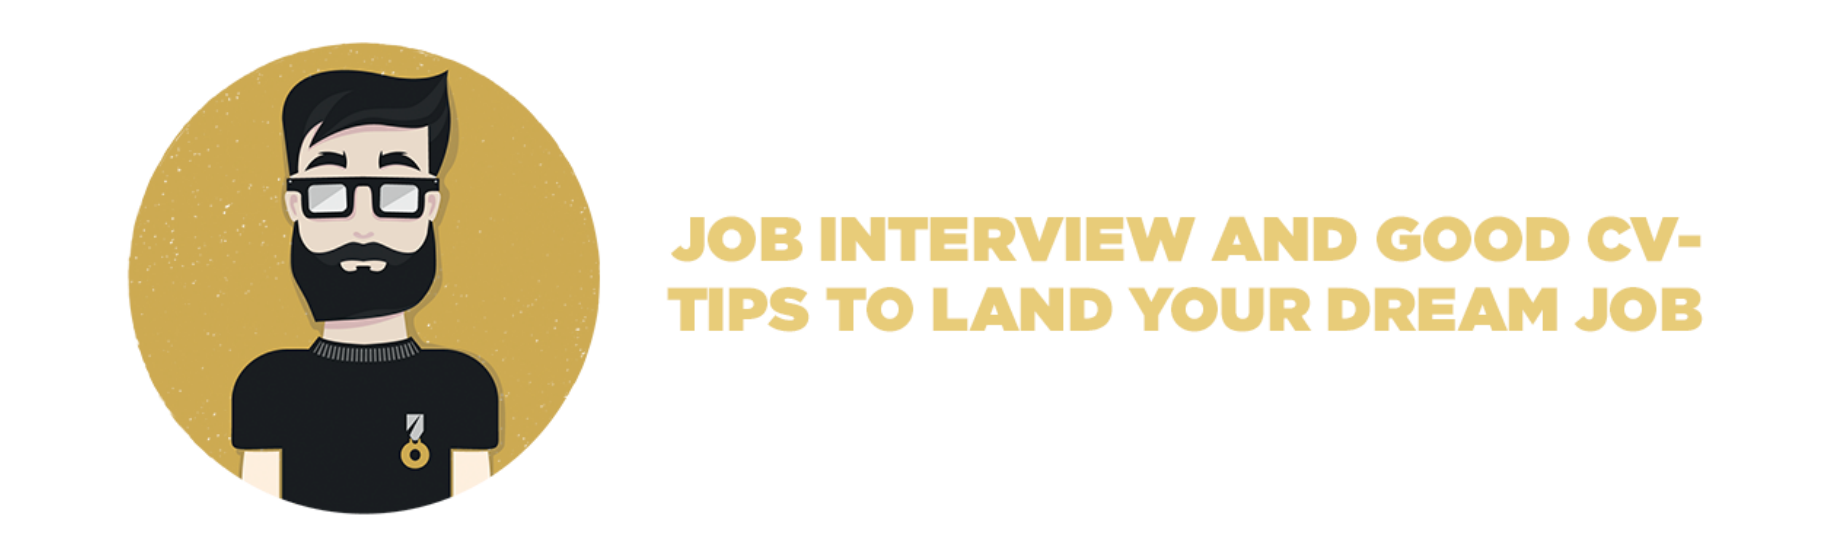 Job Interview And Good Resume Cv Tips For Programmers From Our